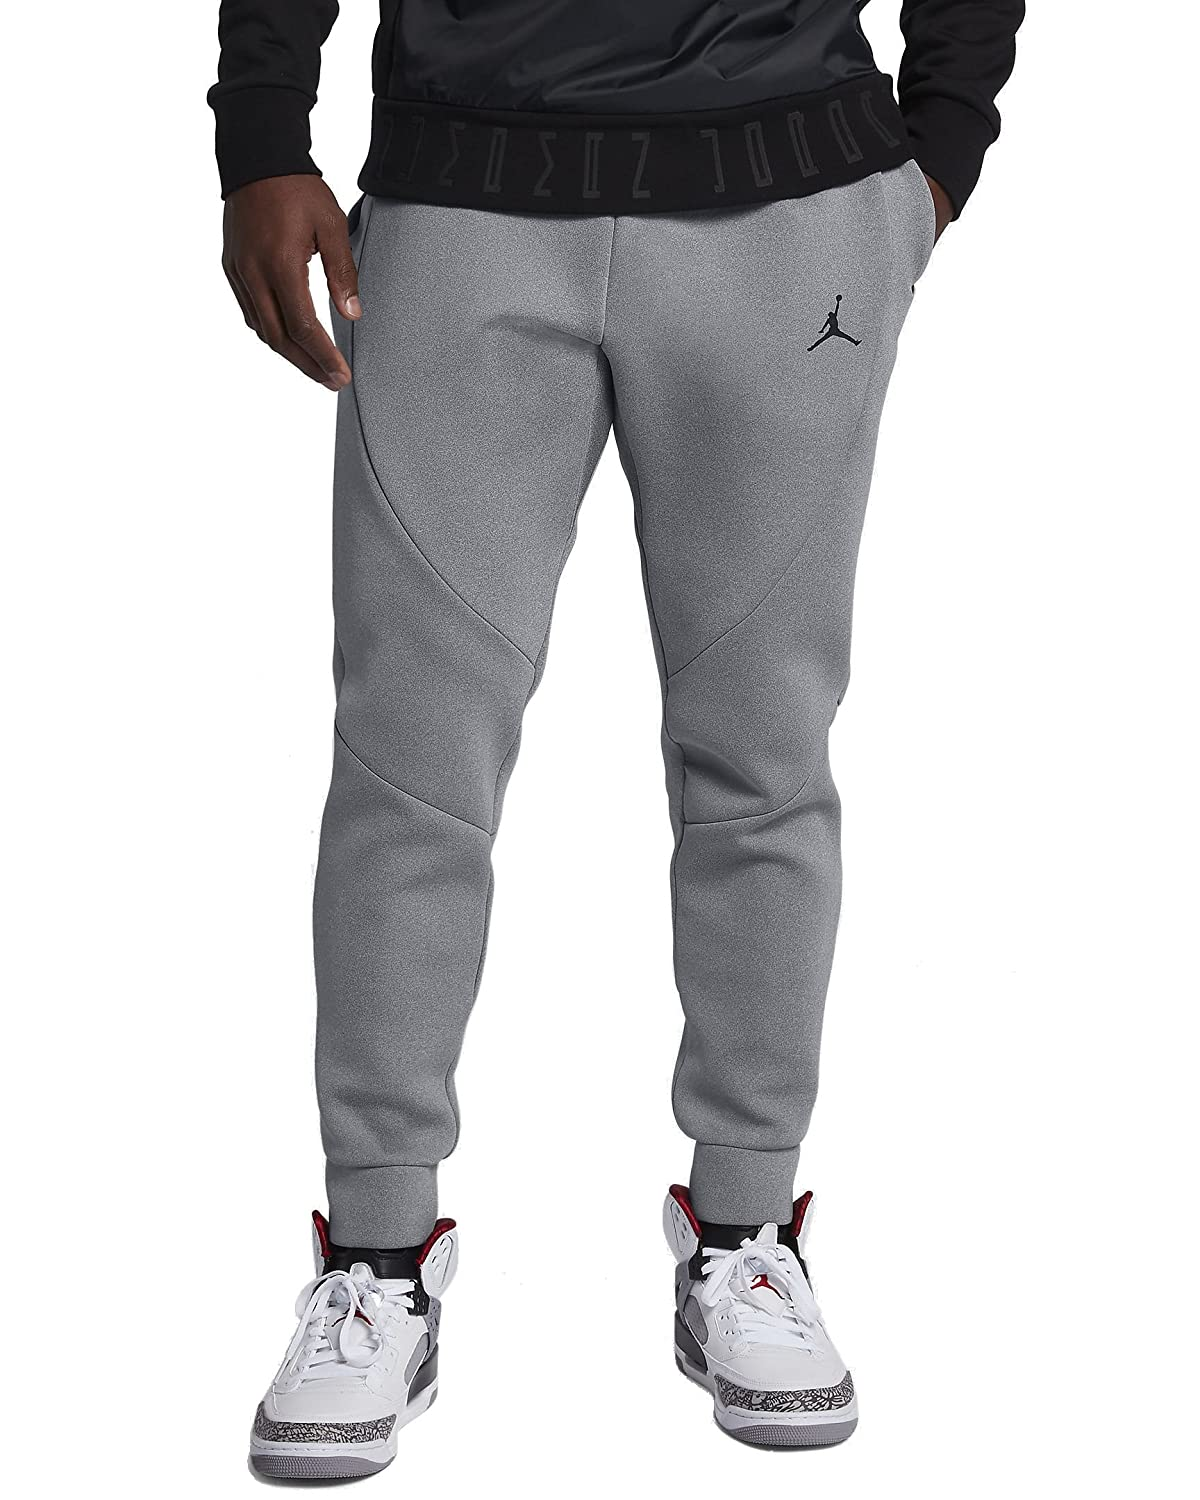 0c85e07a8377 Air Jordan JSW Flight Tech Pants 879499-121 Whiteblack Size 3XL  NIKE  Jordan Flight Tech Fleece Pants Mens at Amazon Mens Clothing store ...